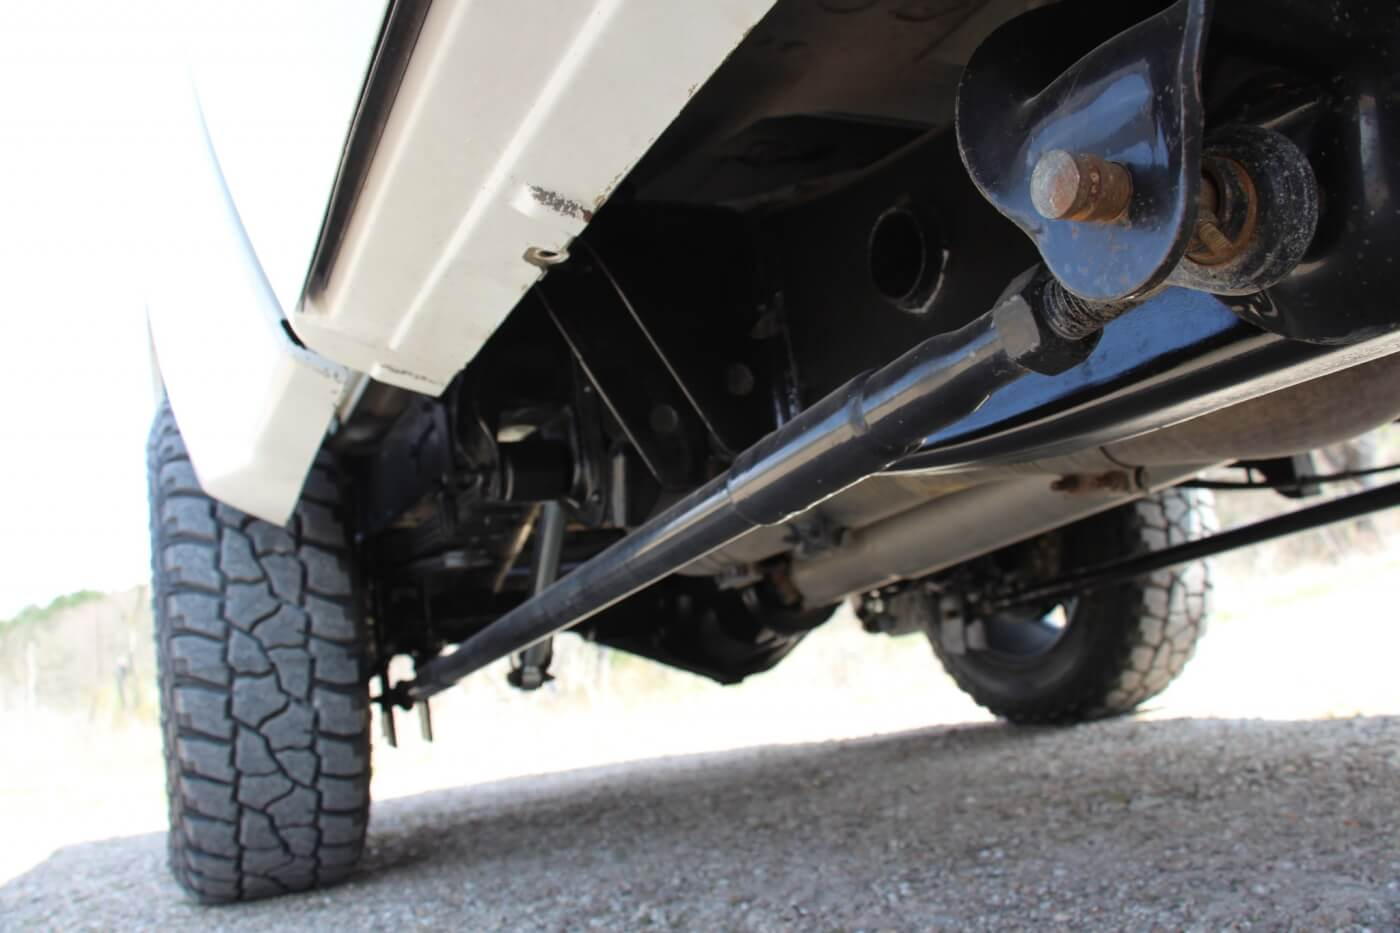 Kaden's good friend, Jon Elliott, built the traction bars harbored under the truck. Made with heavy-duty Schedule 80 pipe, they haven't skipped a beat so far—surviving their fair share of sled pull and drag-strip abuse.